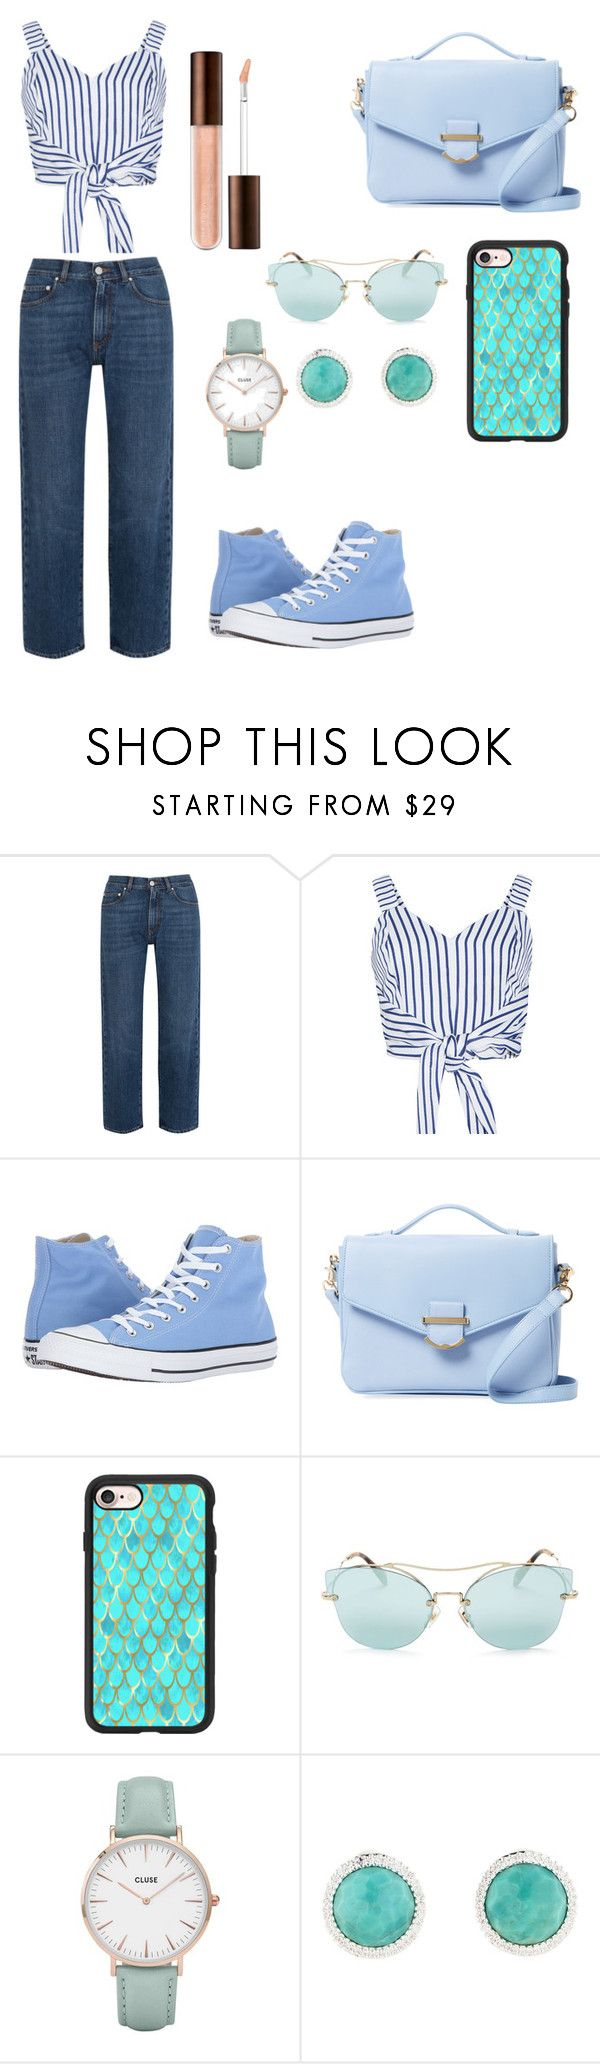 """Light blues"" by iammariii ❤ liked on Polyvore featuring AlexaChung, WithChic, Converse, Cynthia Rowley, Casetify, Miu Miu and CLUSE"